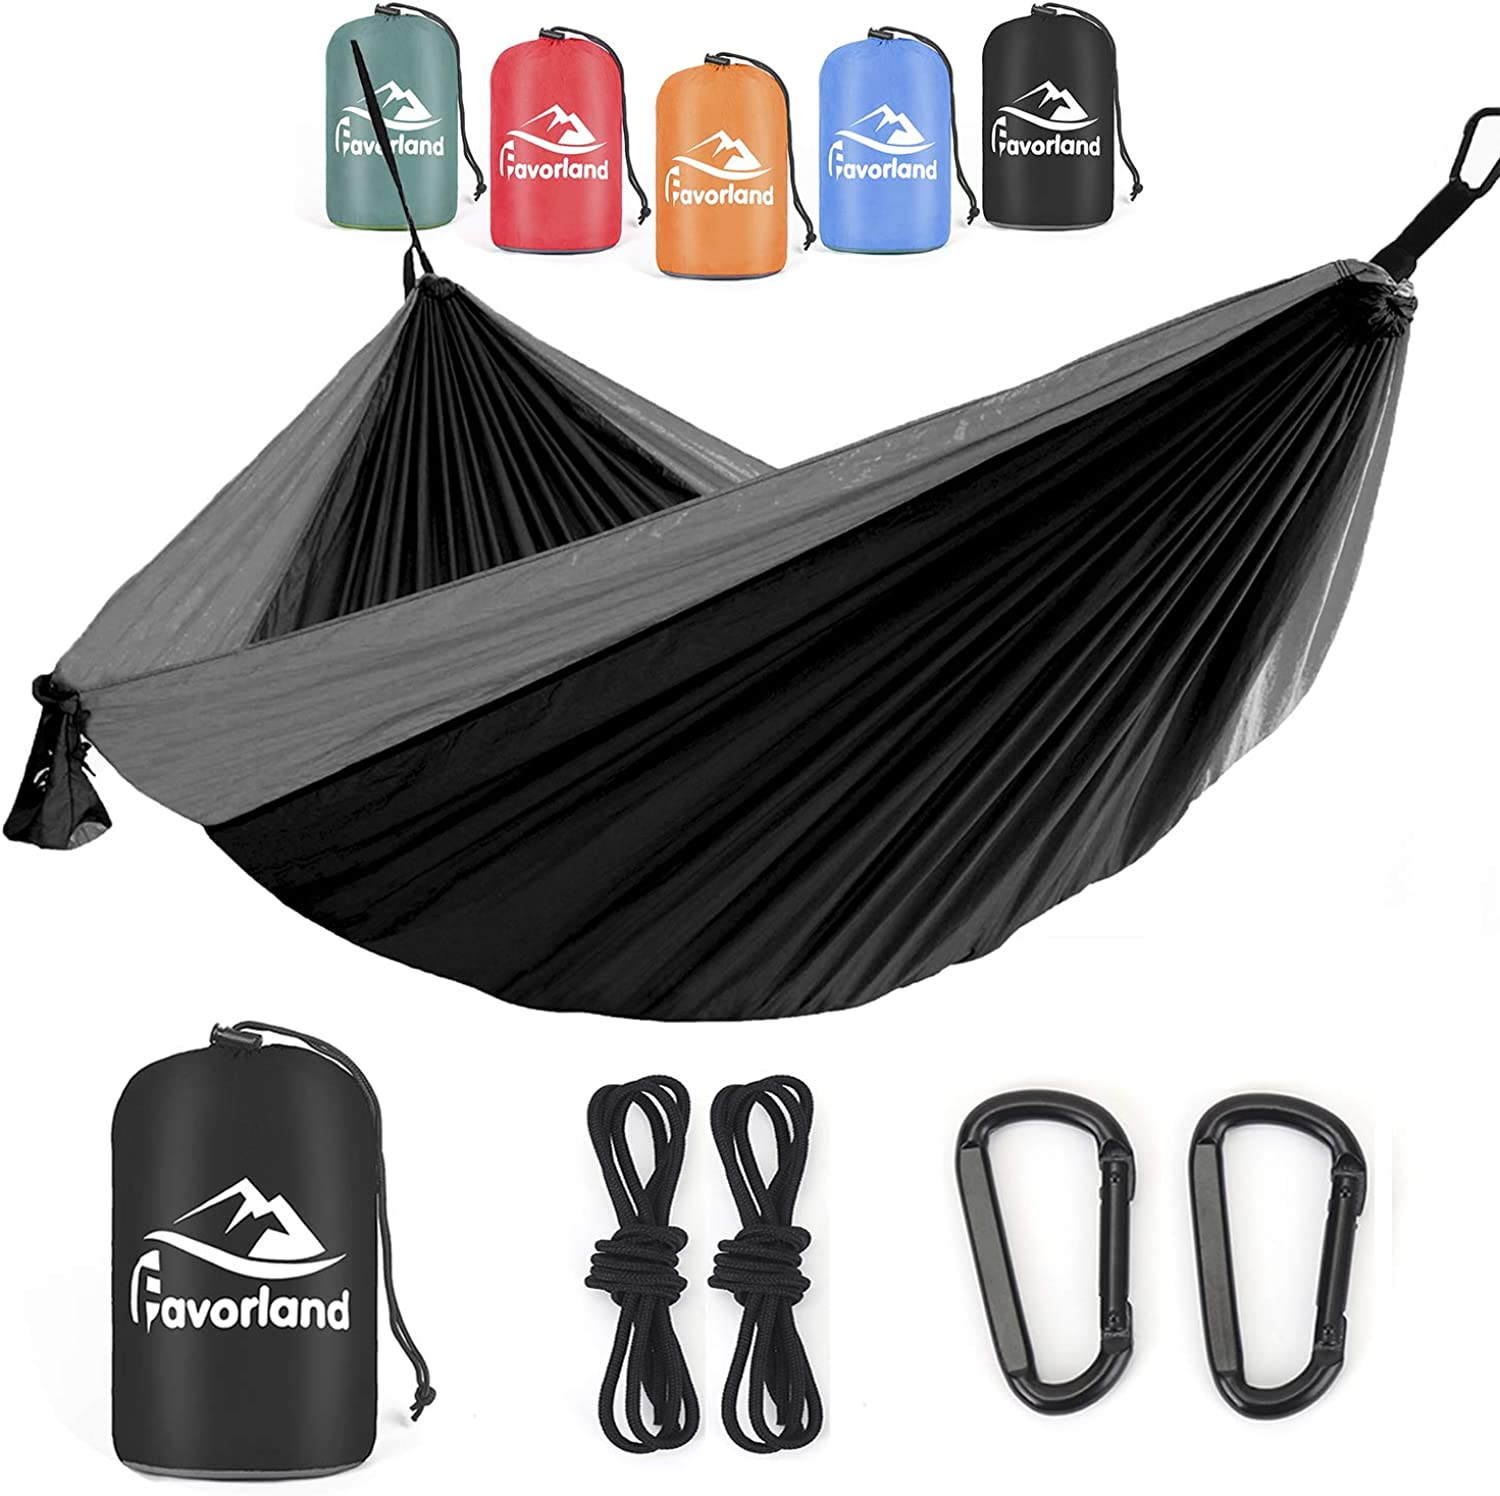 Favorland Camping Hammock Double Single with Tree Straps for Hiking, Backpacking, Travel, Beach, Yard – 2 Persons Outdoor Indoor Lightweight Portable with Straps Steel Carabiners Nylon